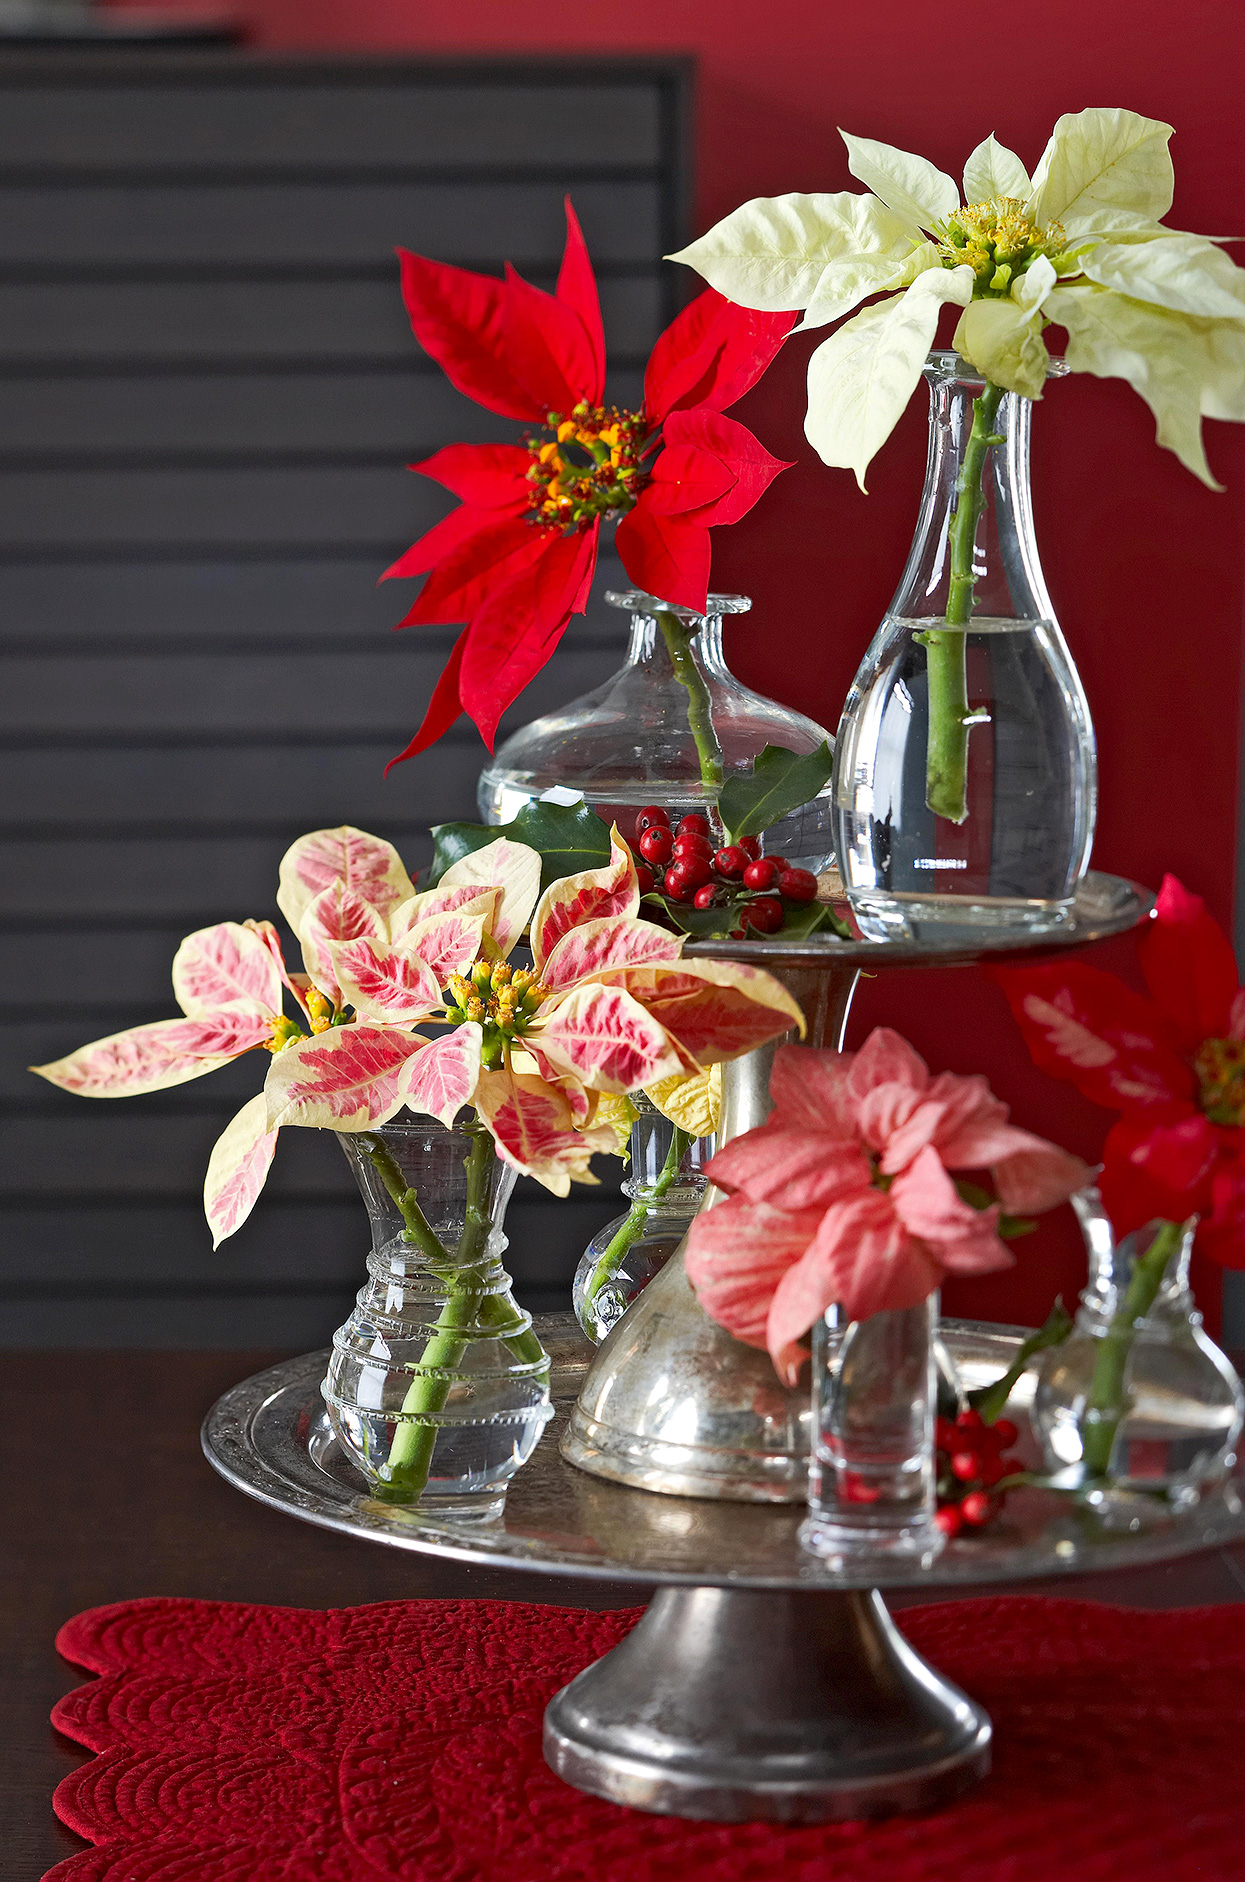 various poinsettia cuttings on tiered stand